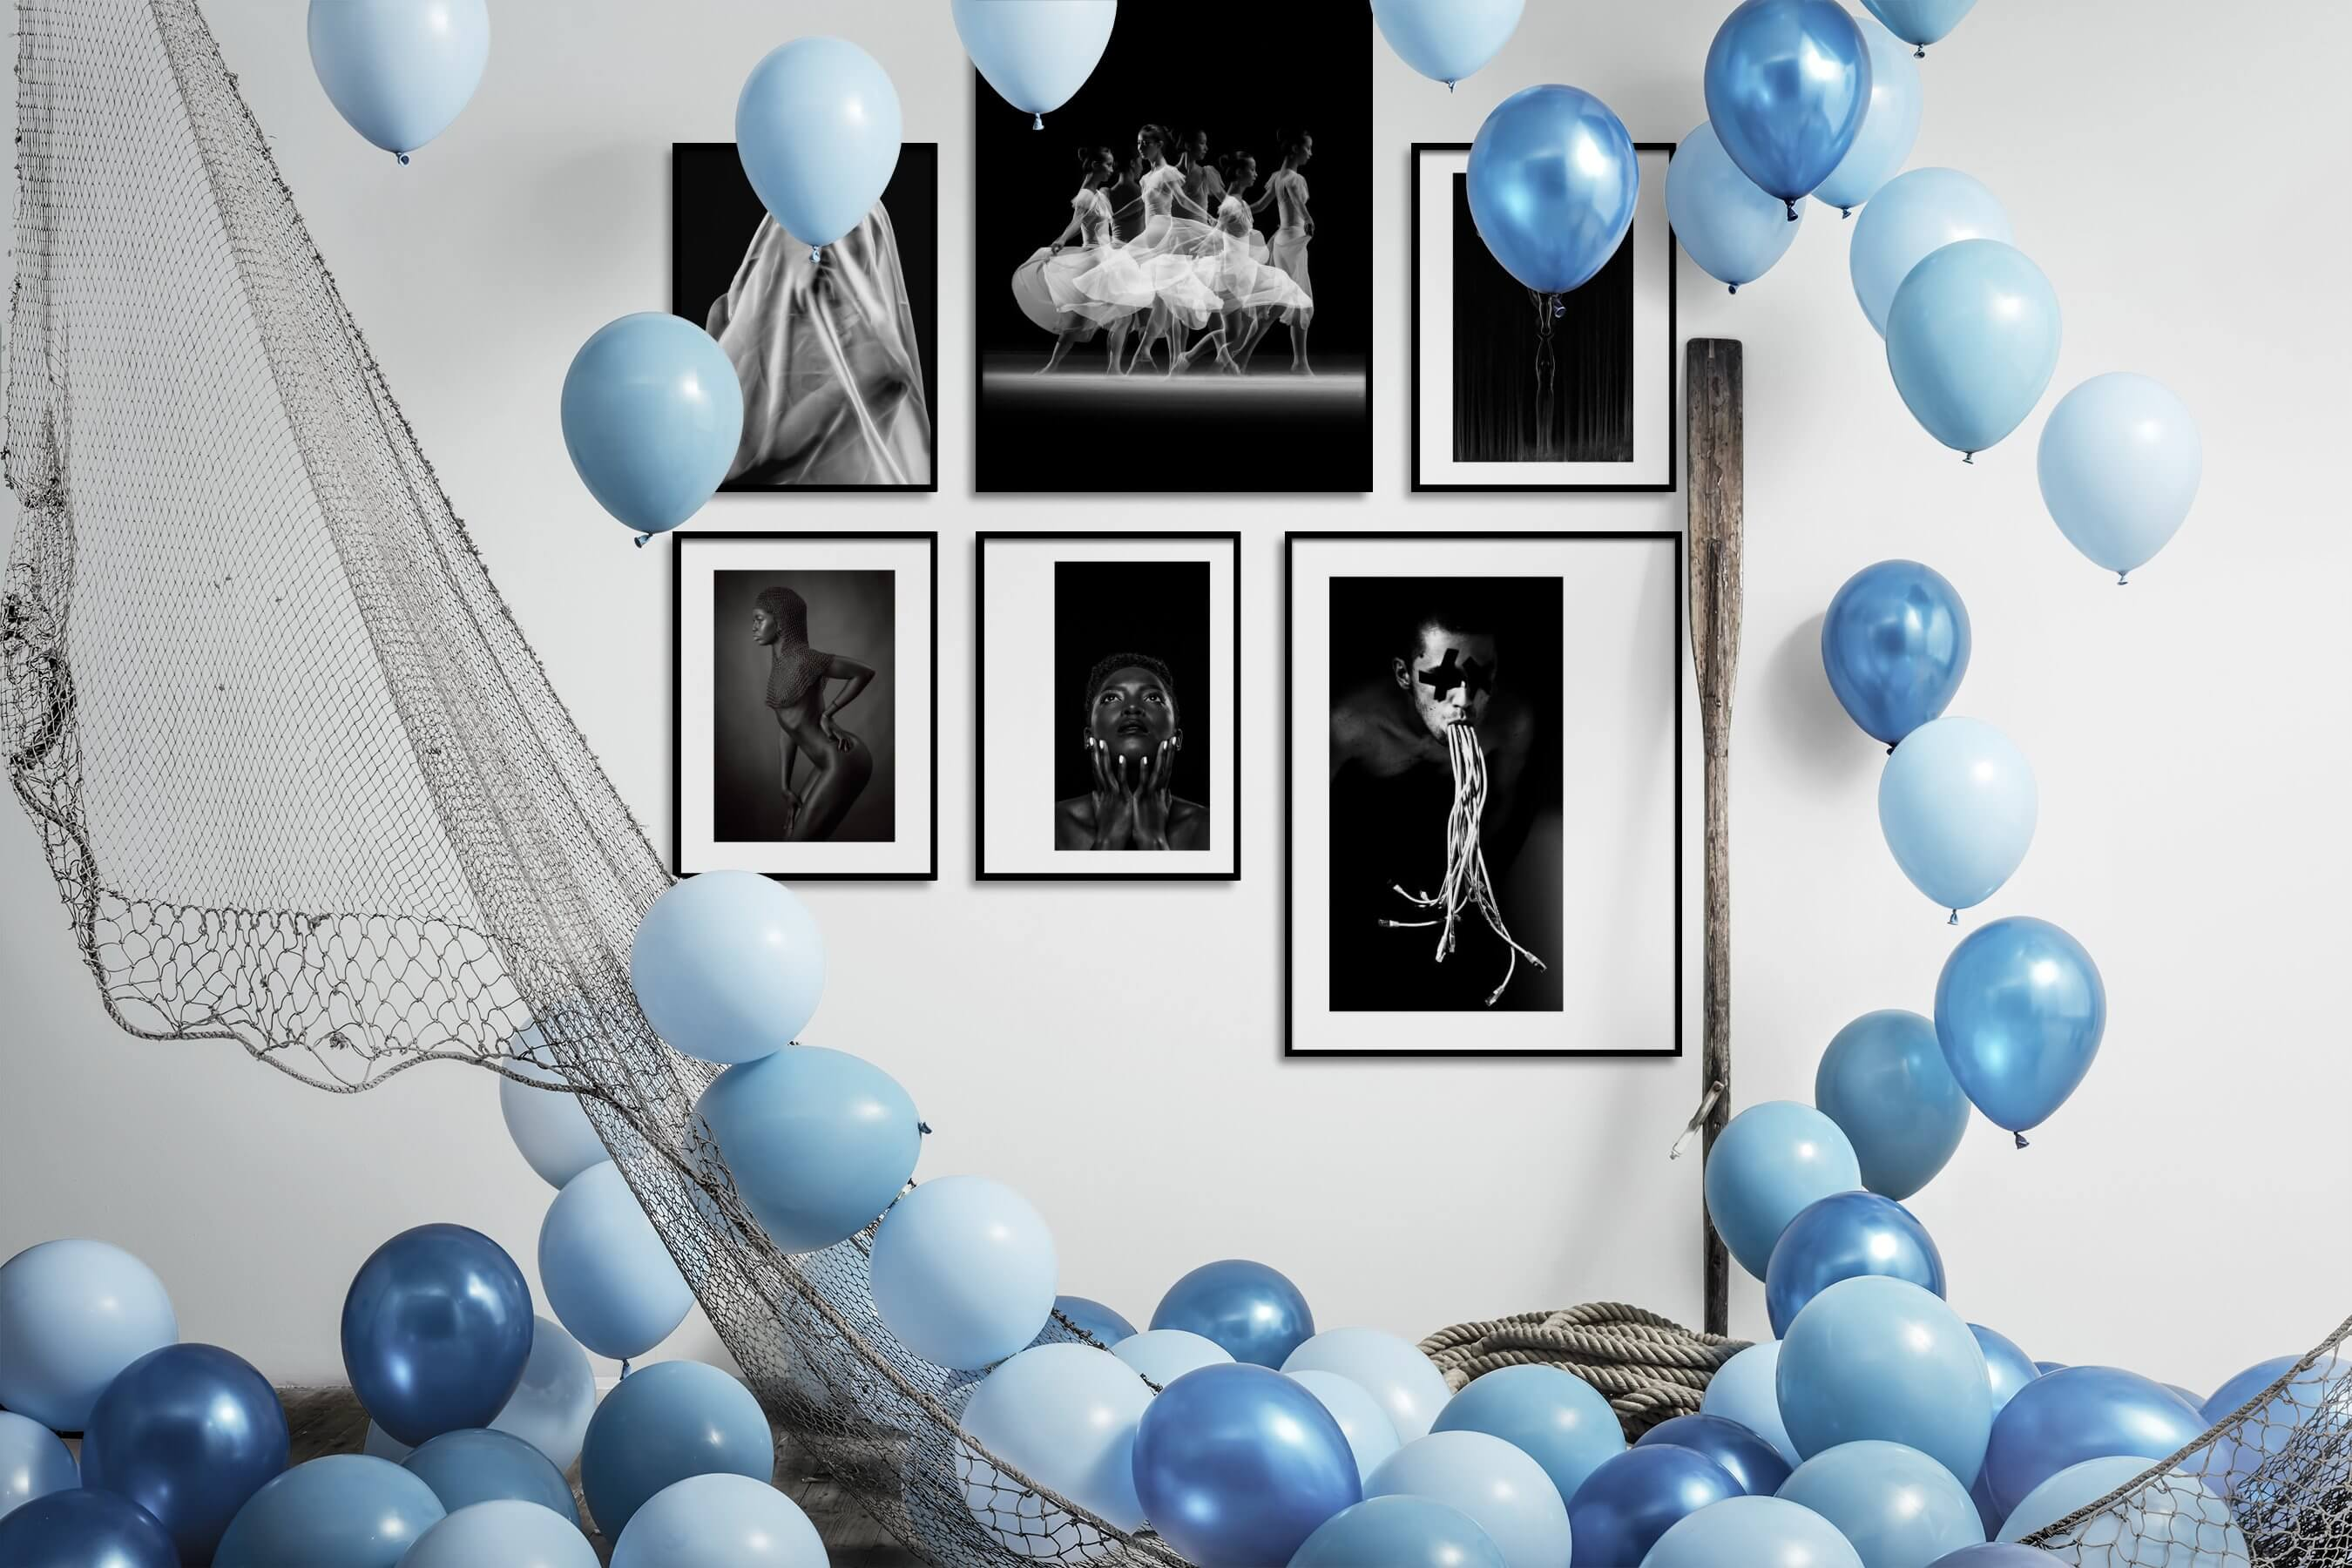 Gallery wall idea with six framed pictures arranged on a wall depicting Artsy, Black & White, Dark Tones, Fashion & Beauty, and For the Minimalist